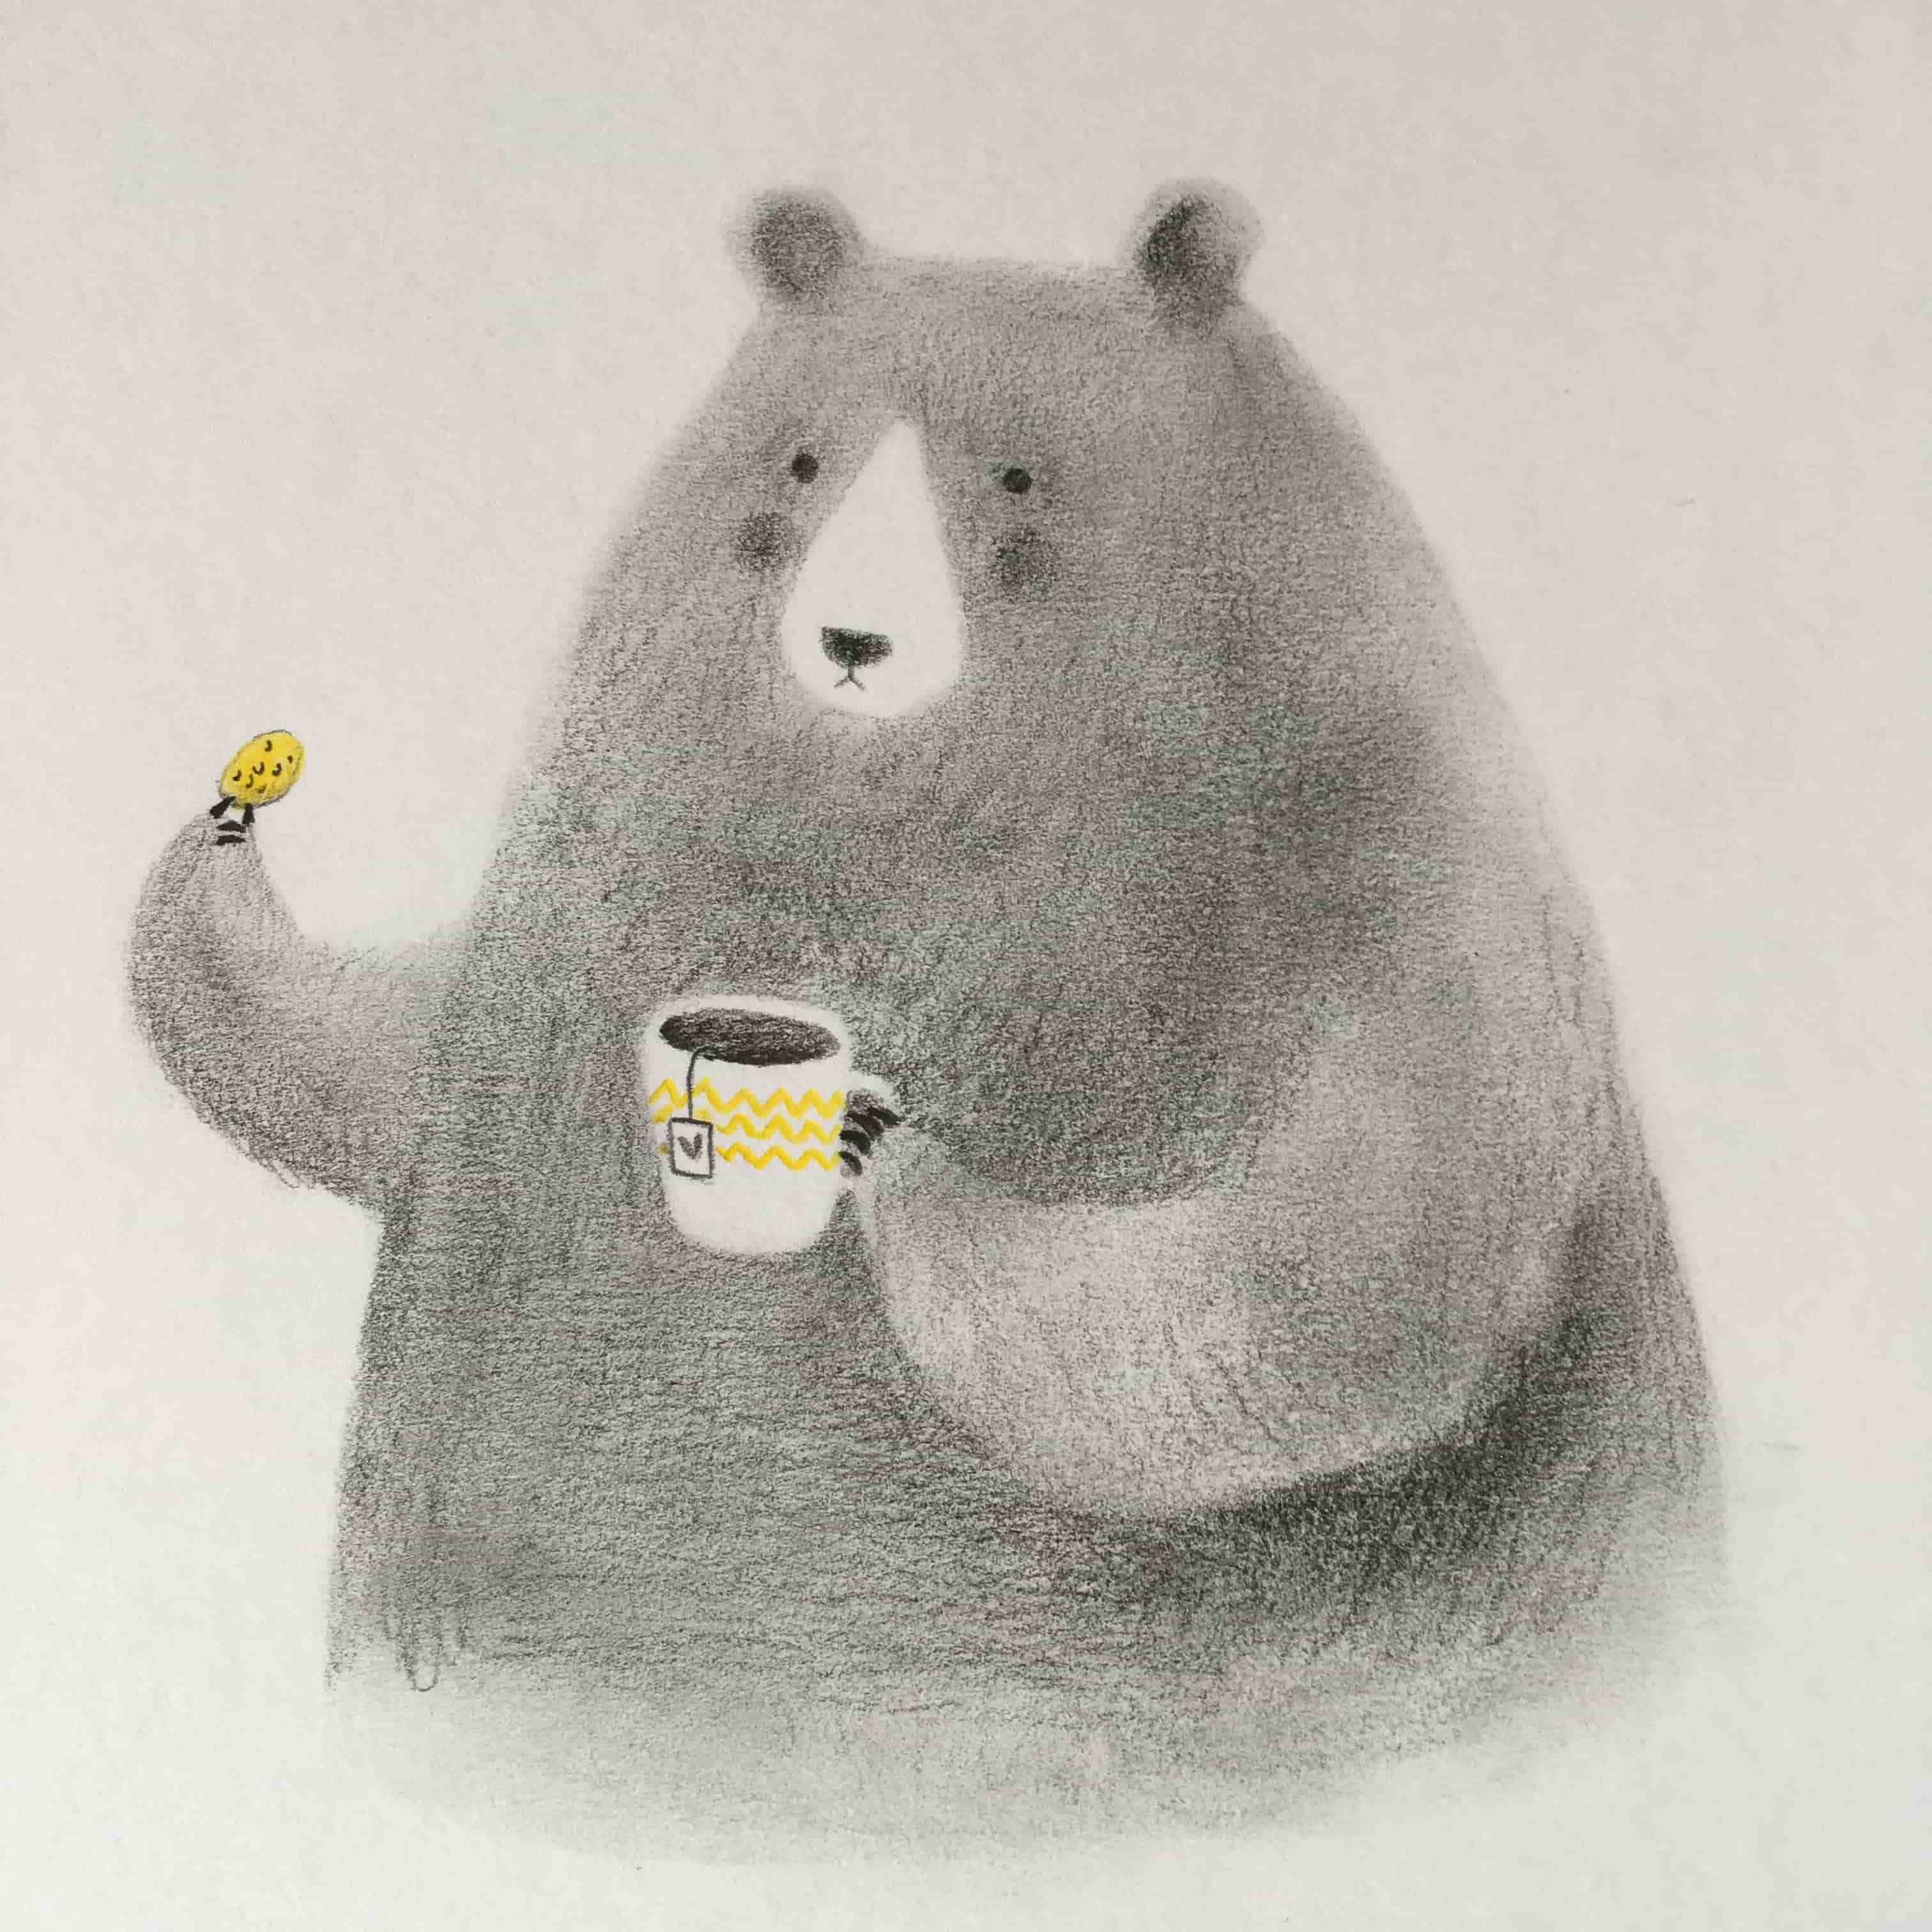 seforapons-illustration-graphite-colouredpencils-bear-junkoebastian-5